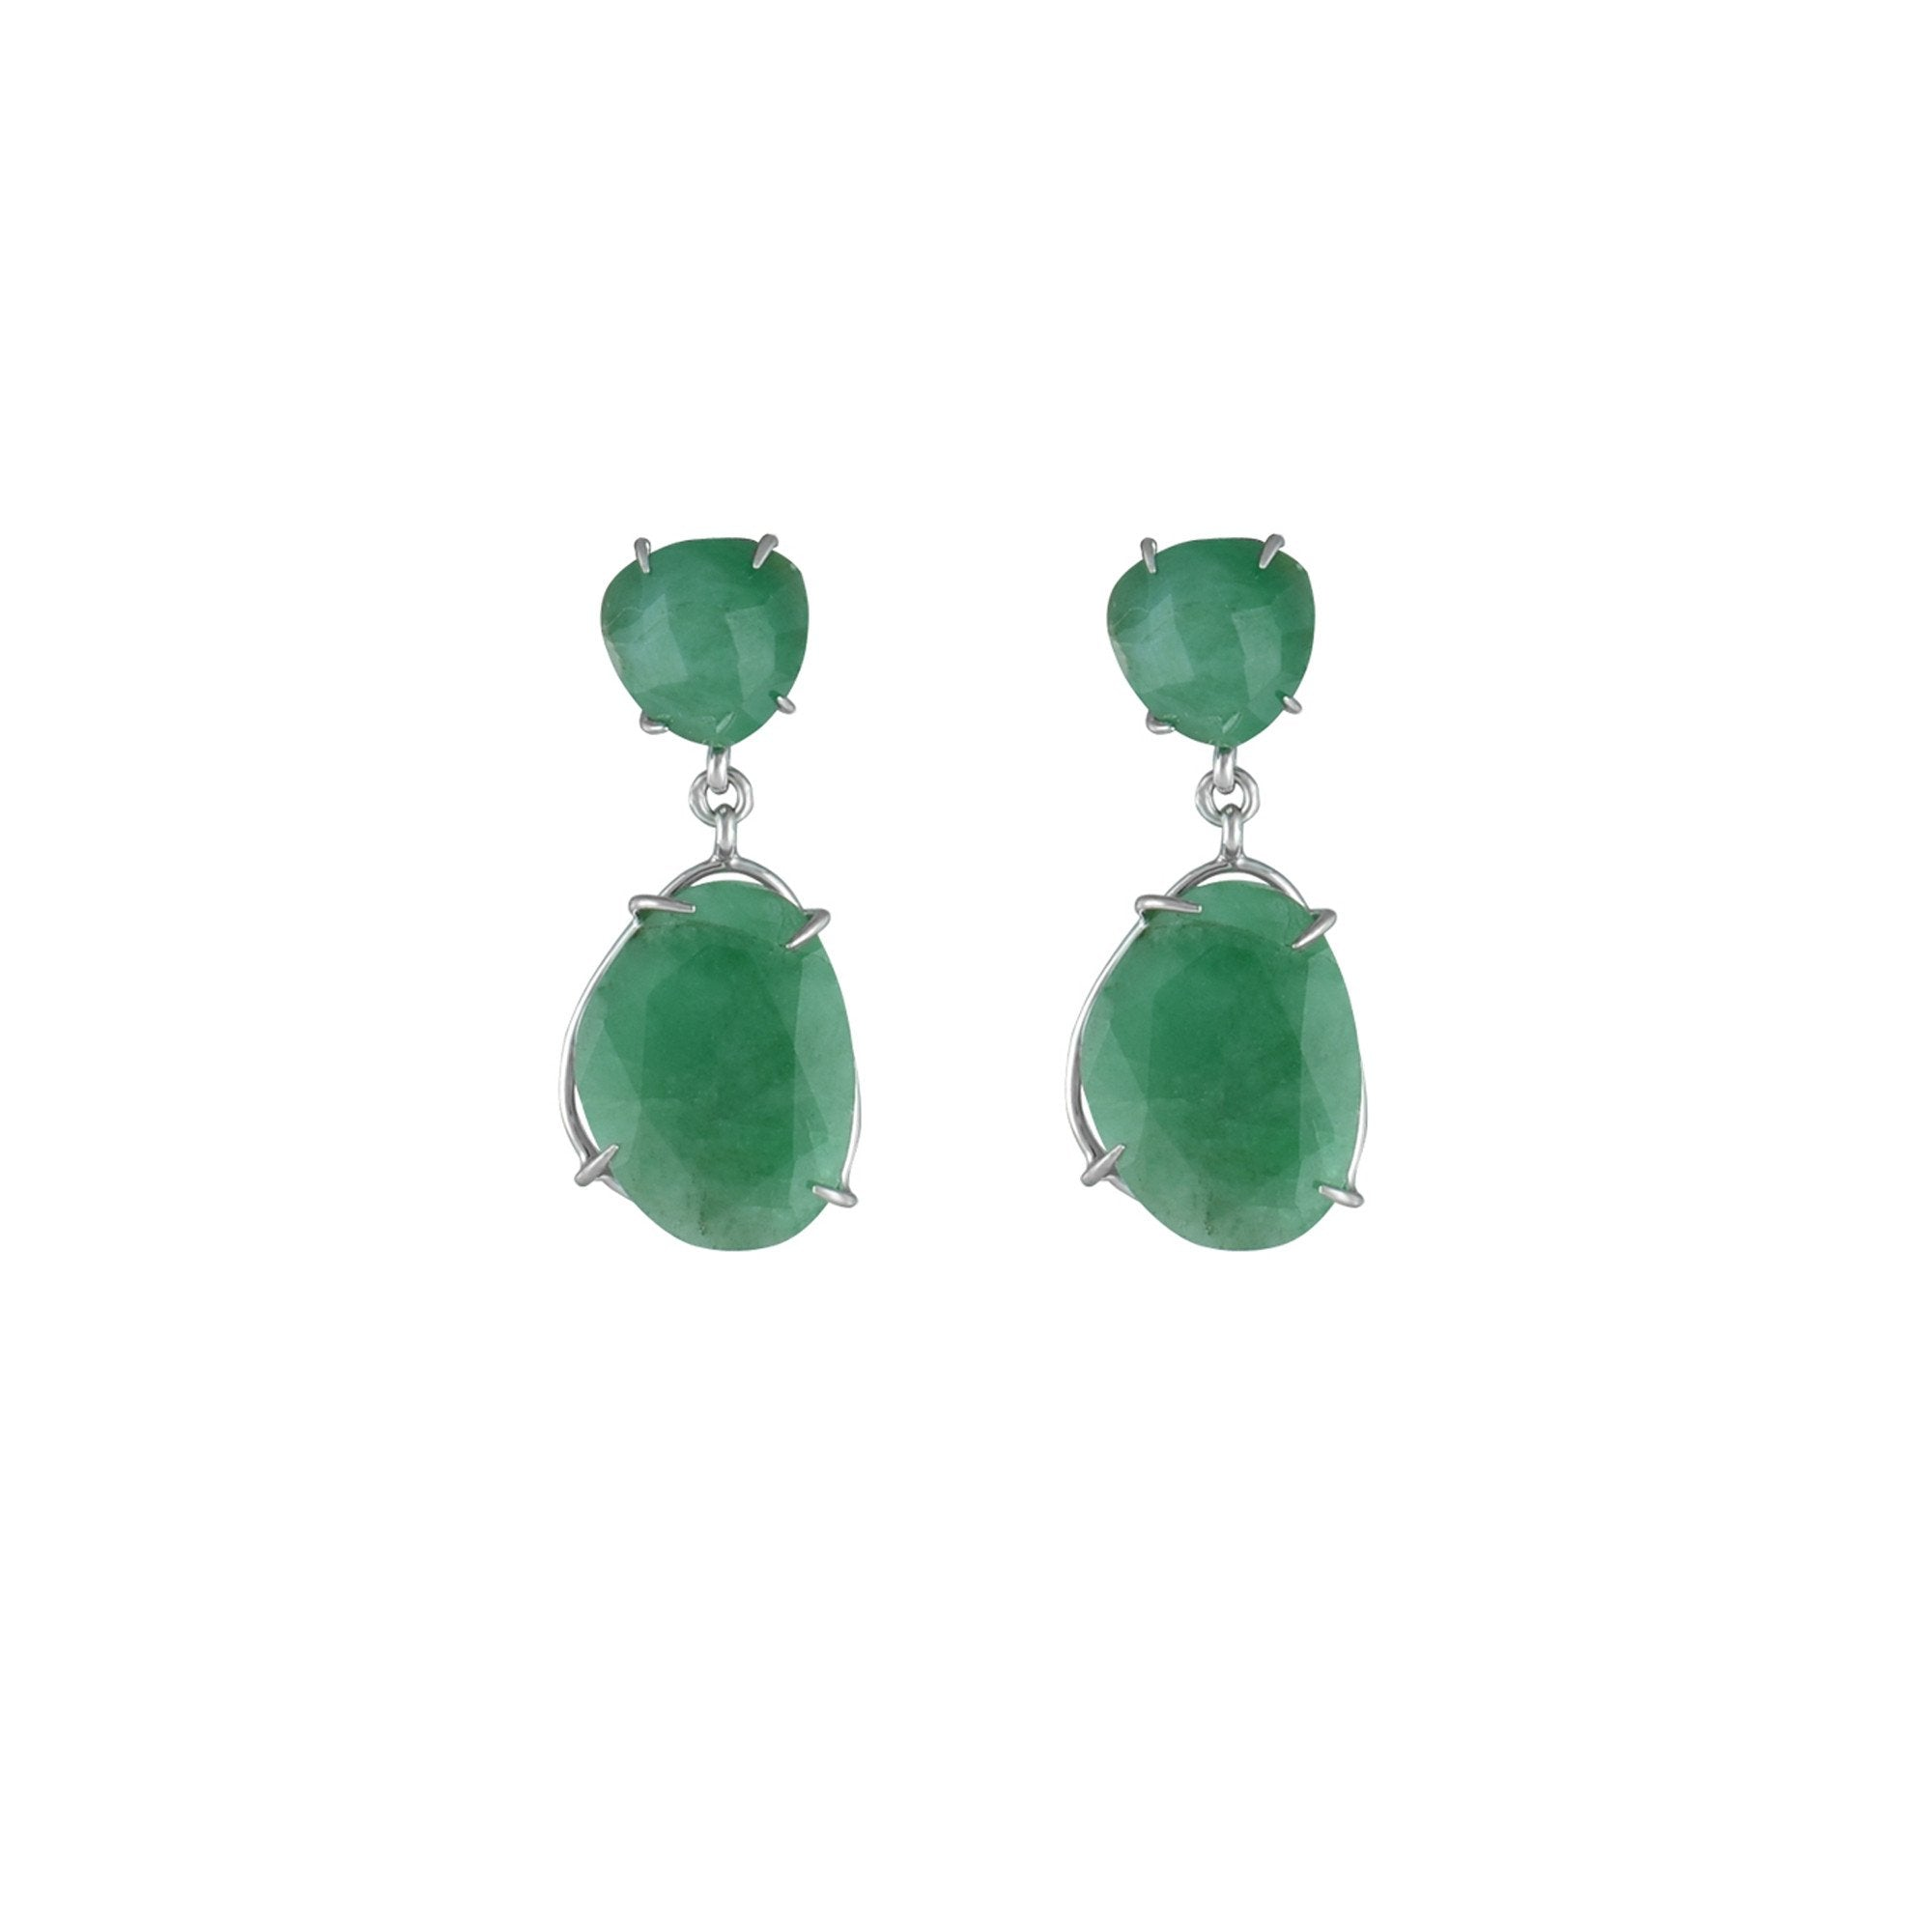 cb007420fe4ca Rough Cut Genuine Emerald Earrings in Sterling Silver